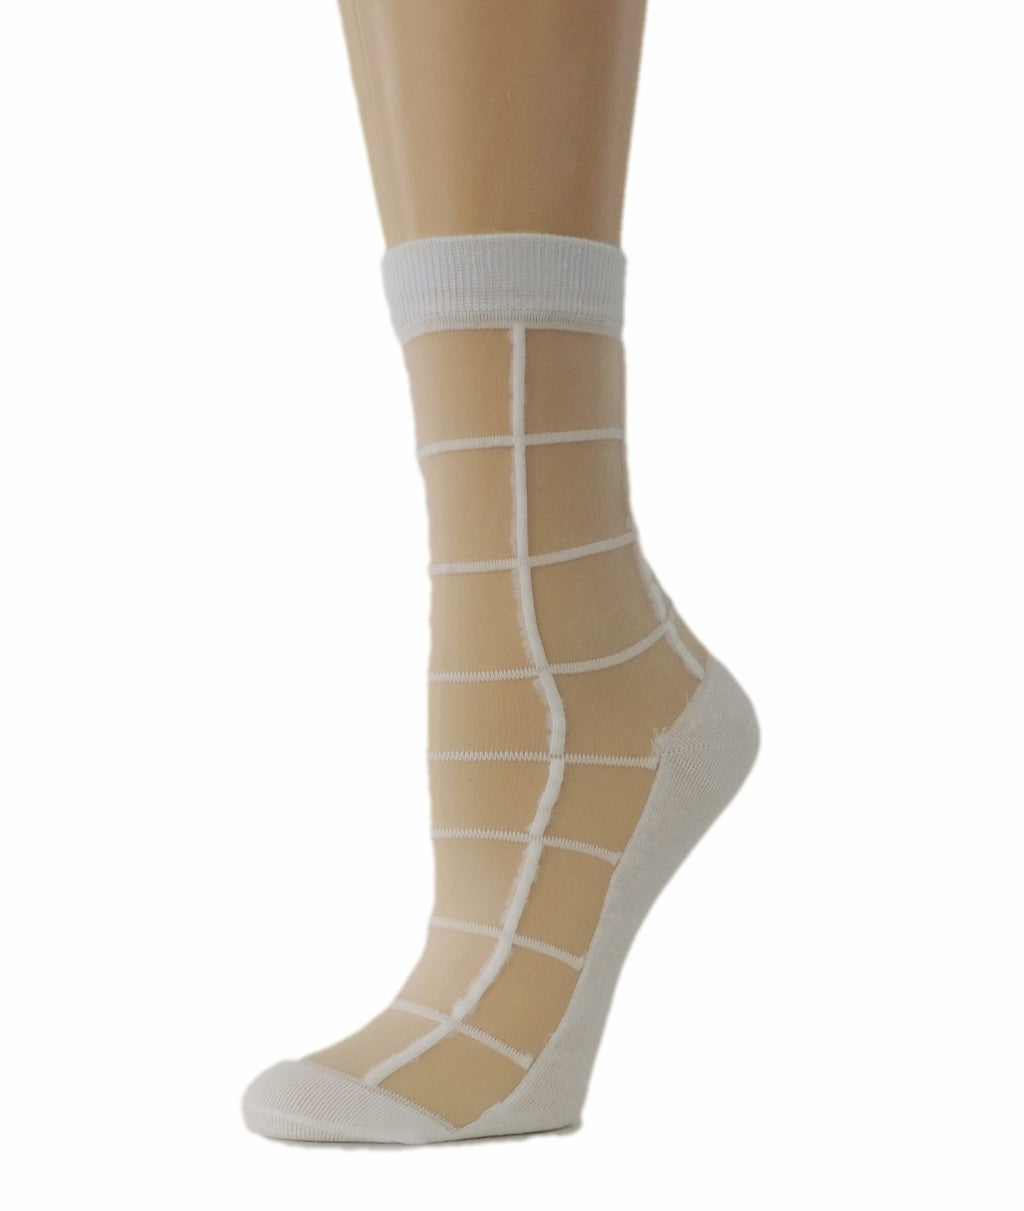 Calm White Square Sheer Socks - Global Trendz Fashion®